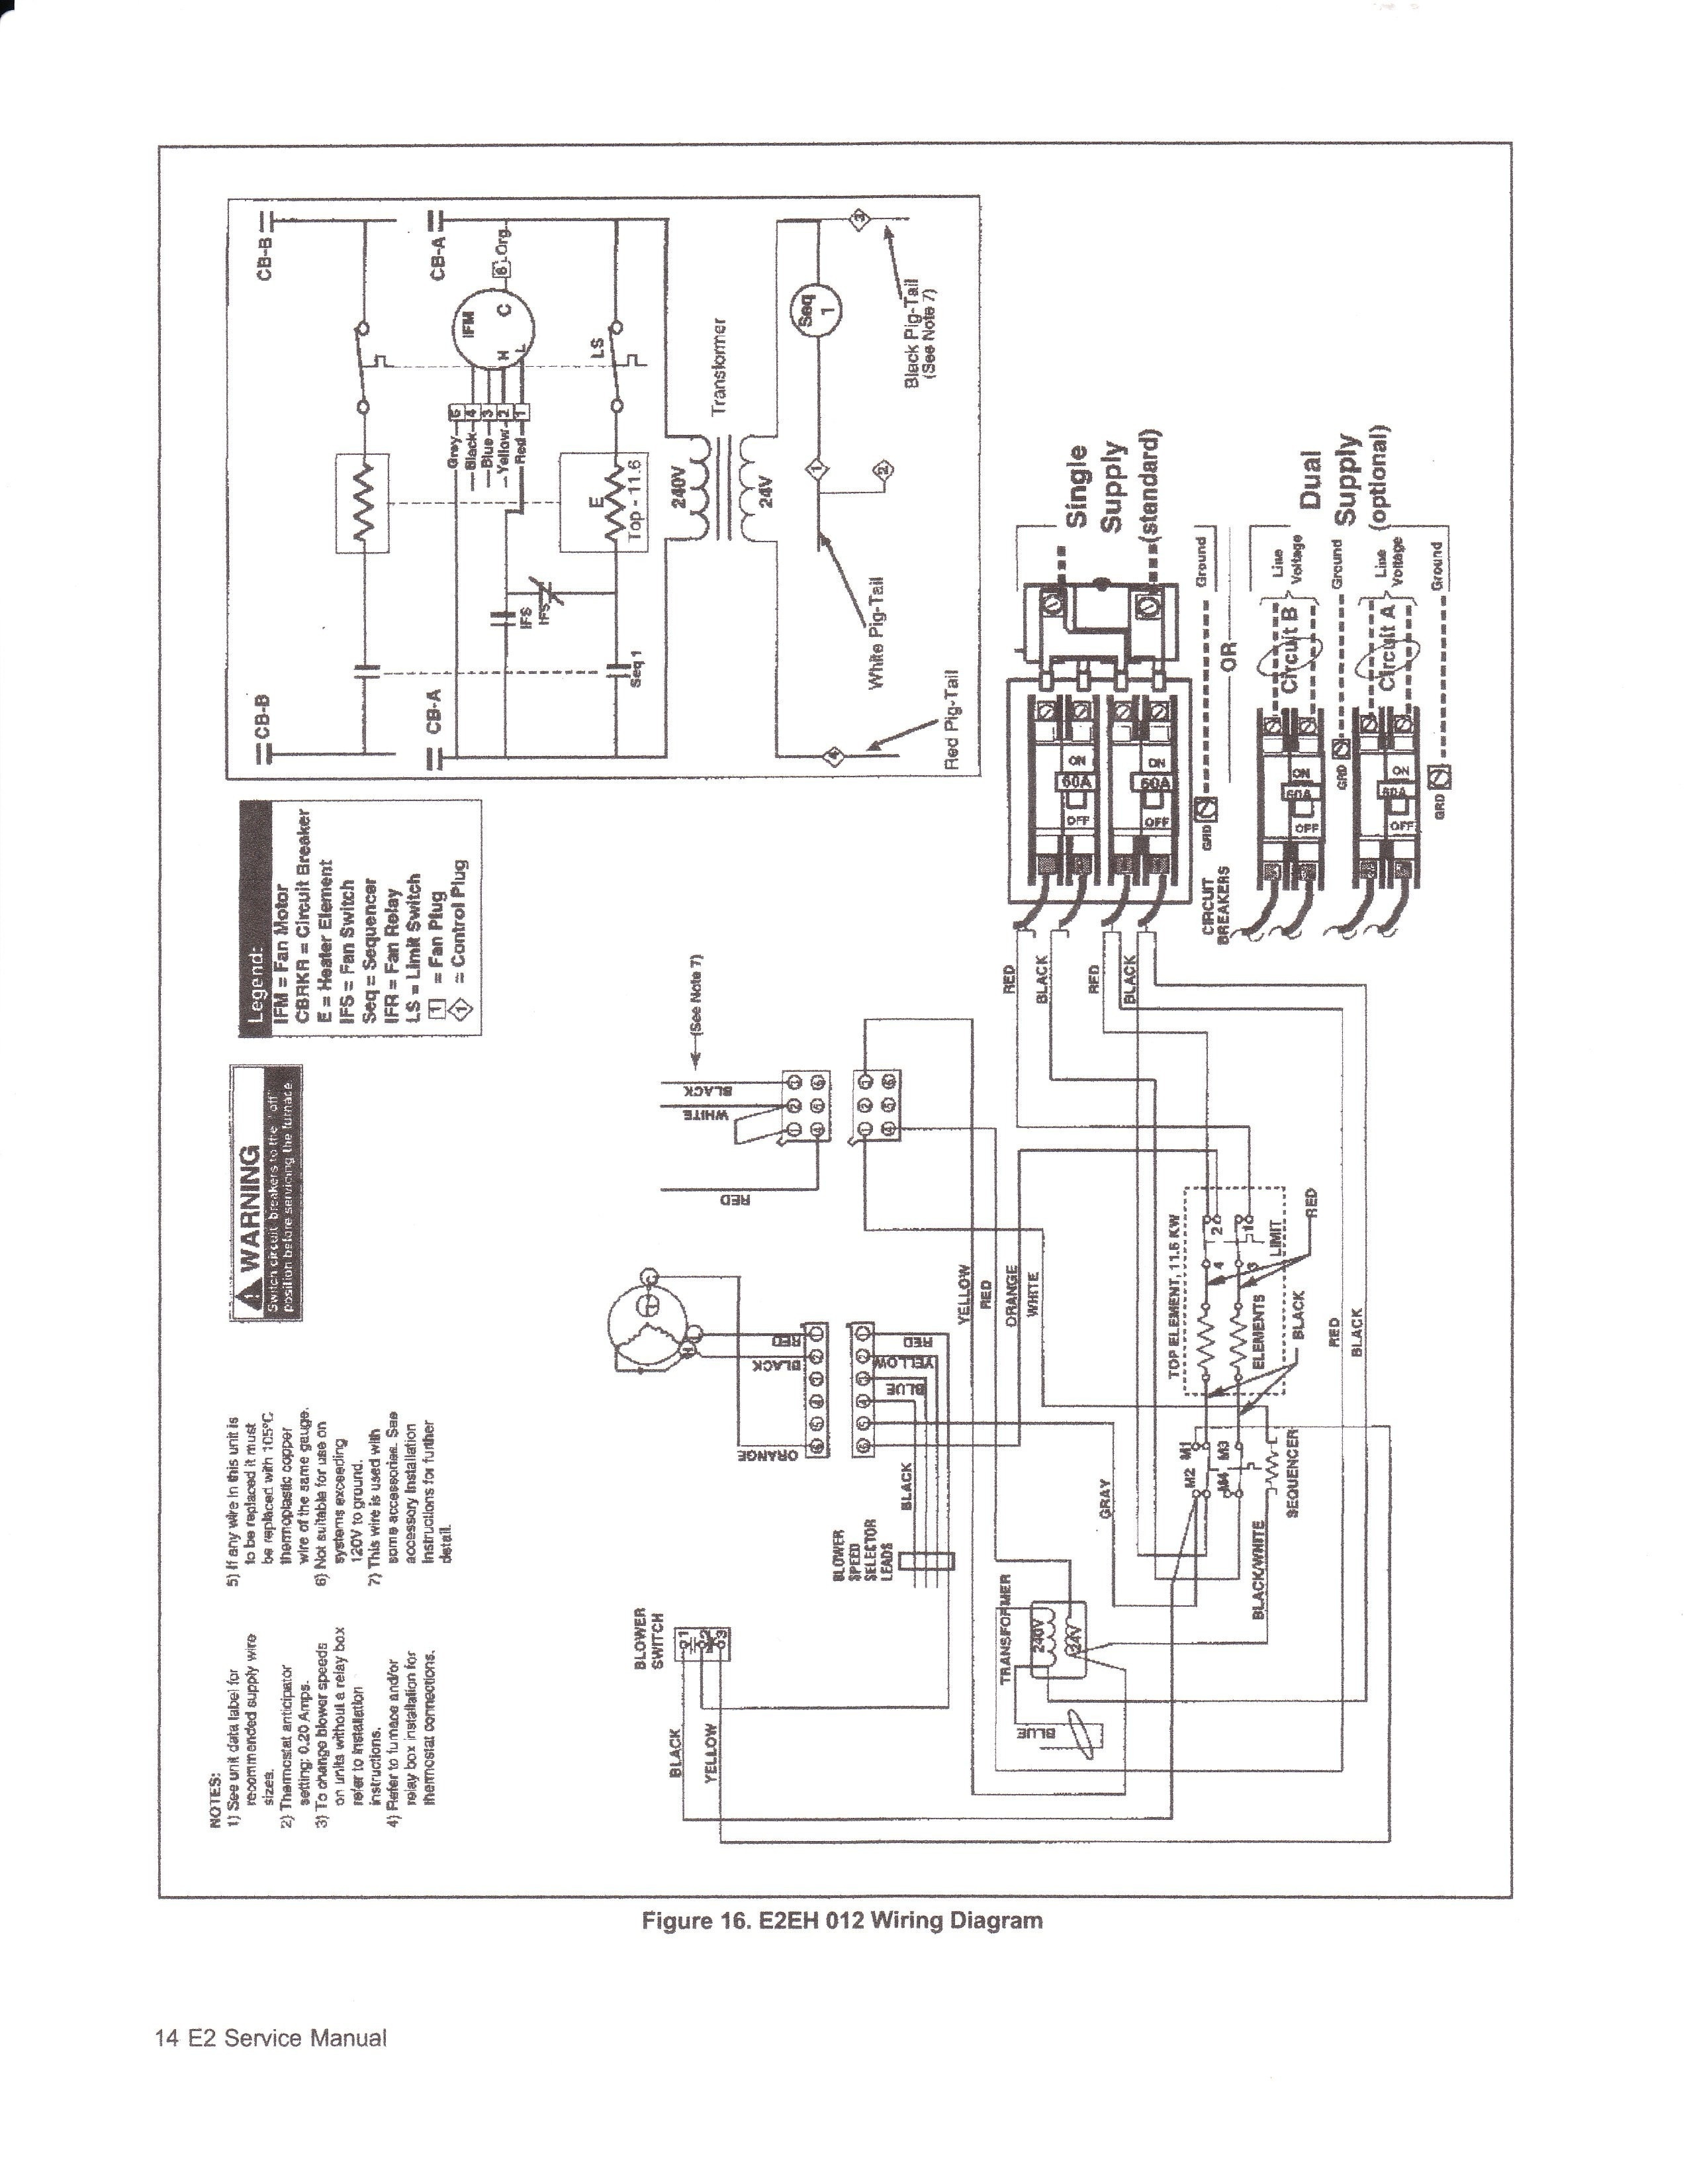 Ac Unit Schematics